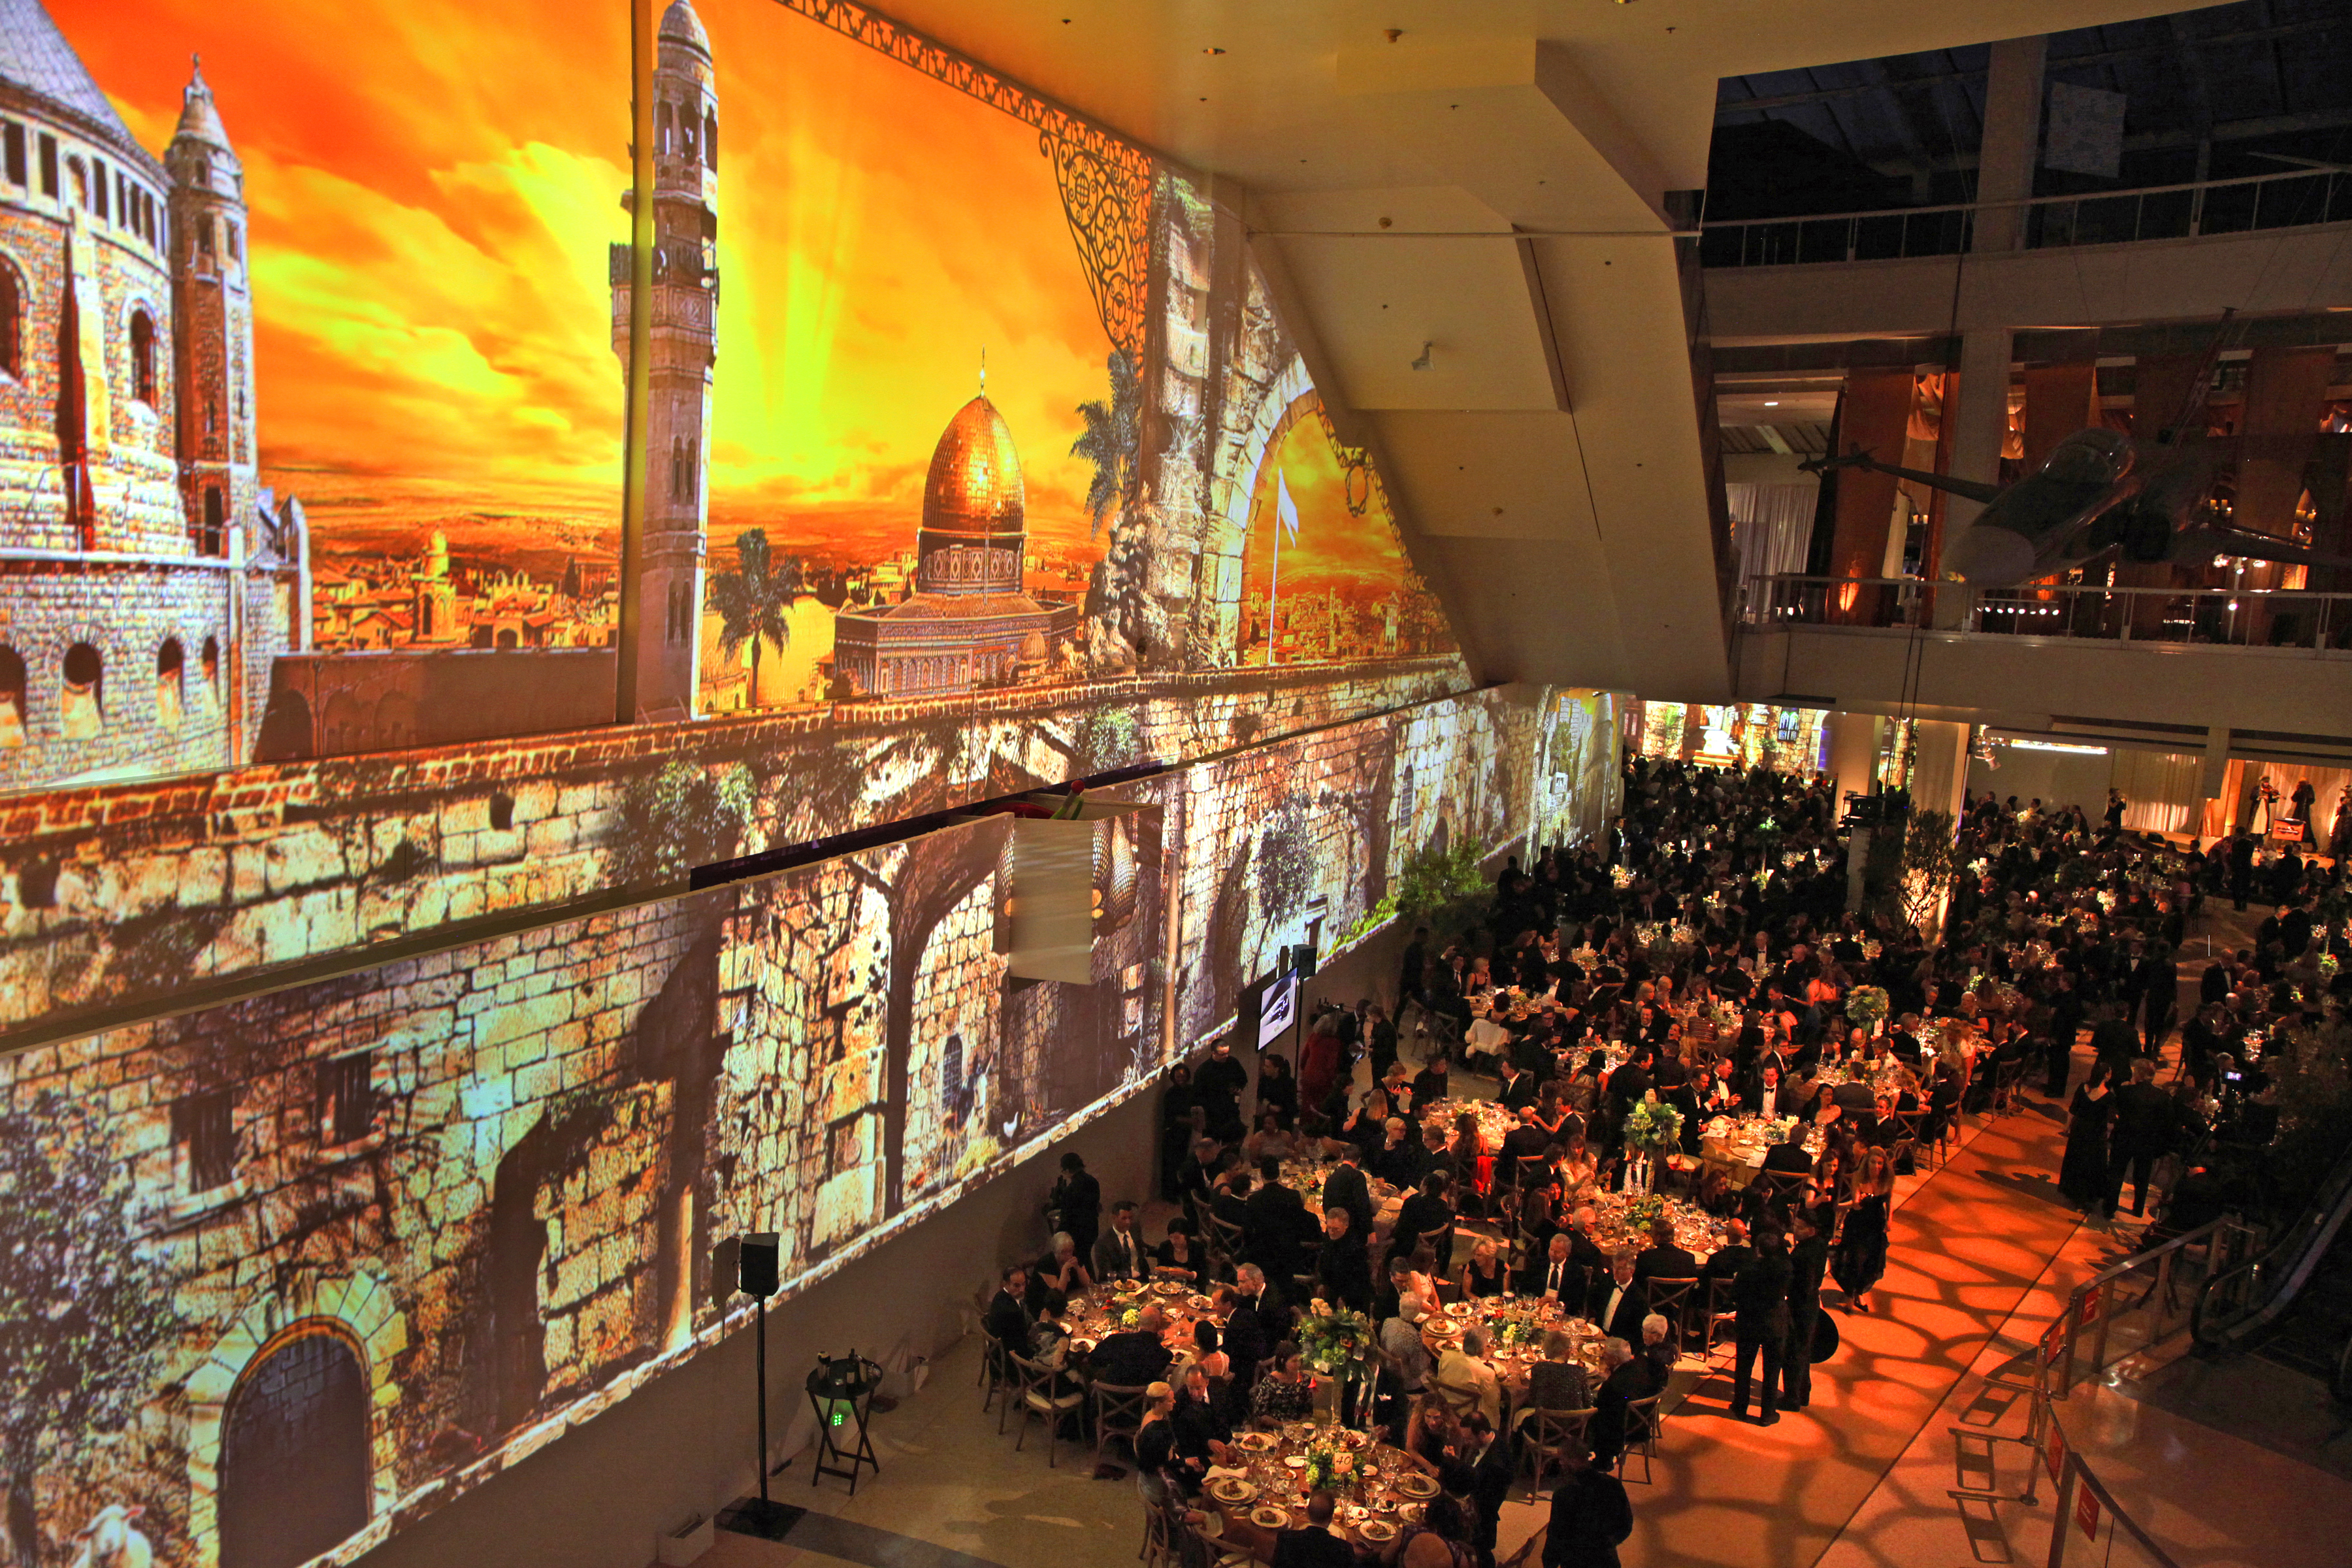 Edgerton Court seated dinner with sunset projection mapping of Jerusalem